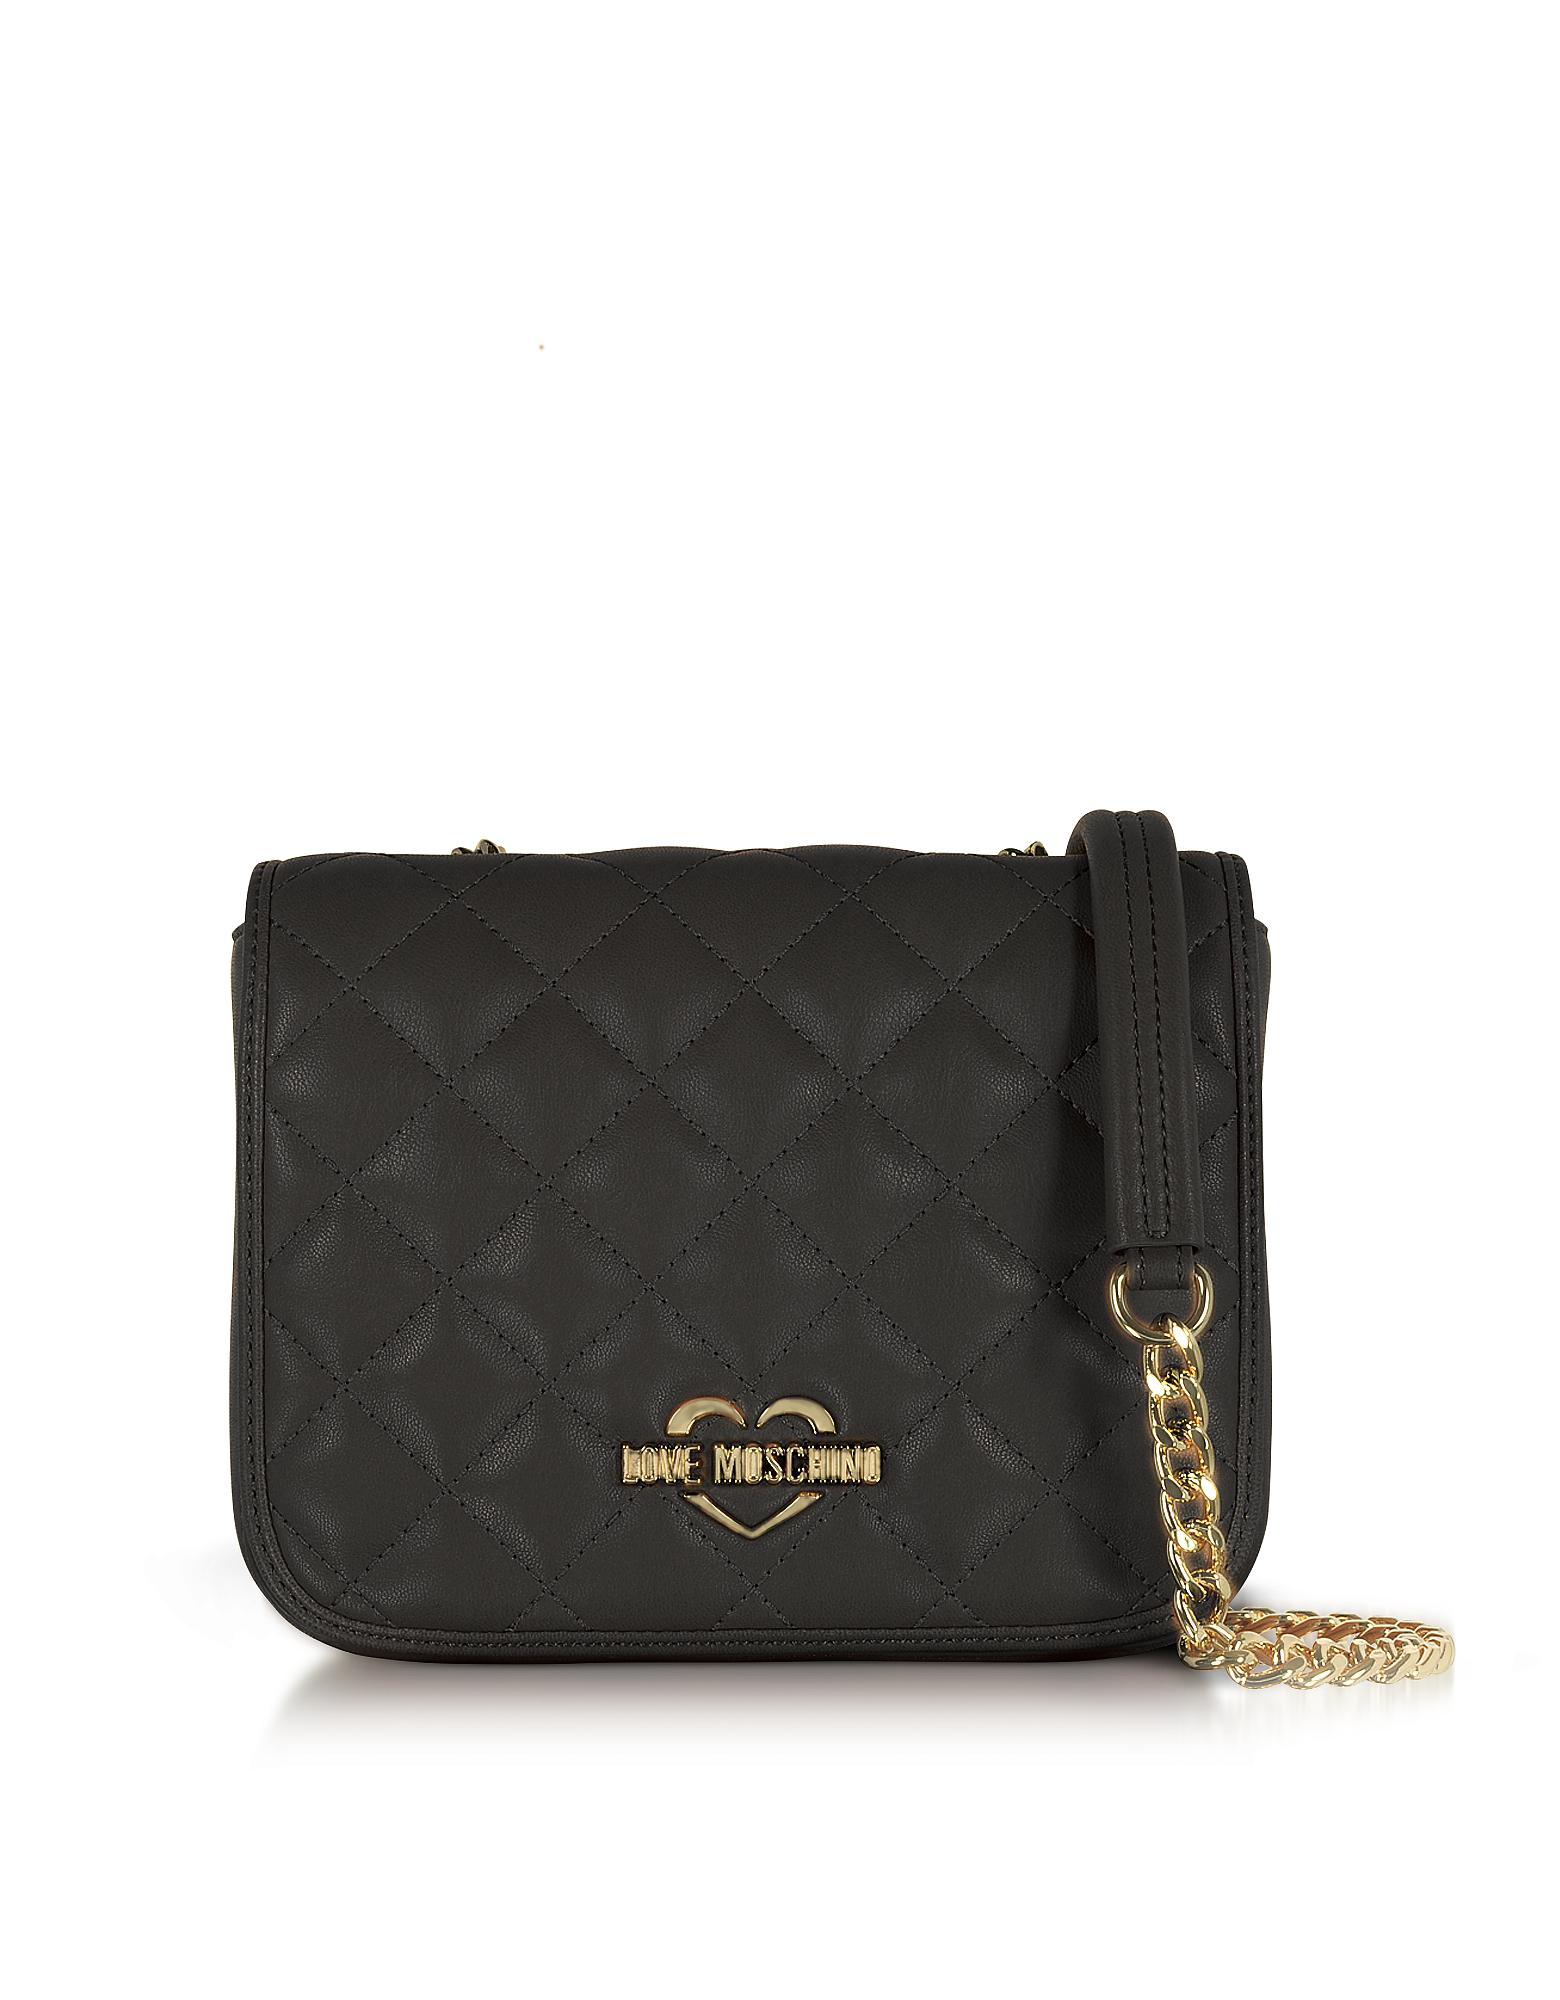 77628b336b1 Lyst - Love Moschino Superquilted Eco-leather Shoulder Bag in Black